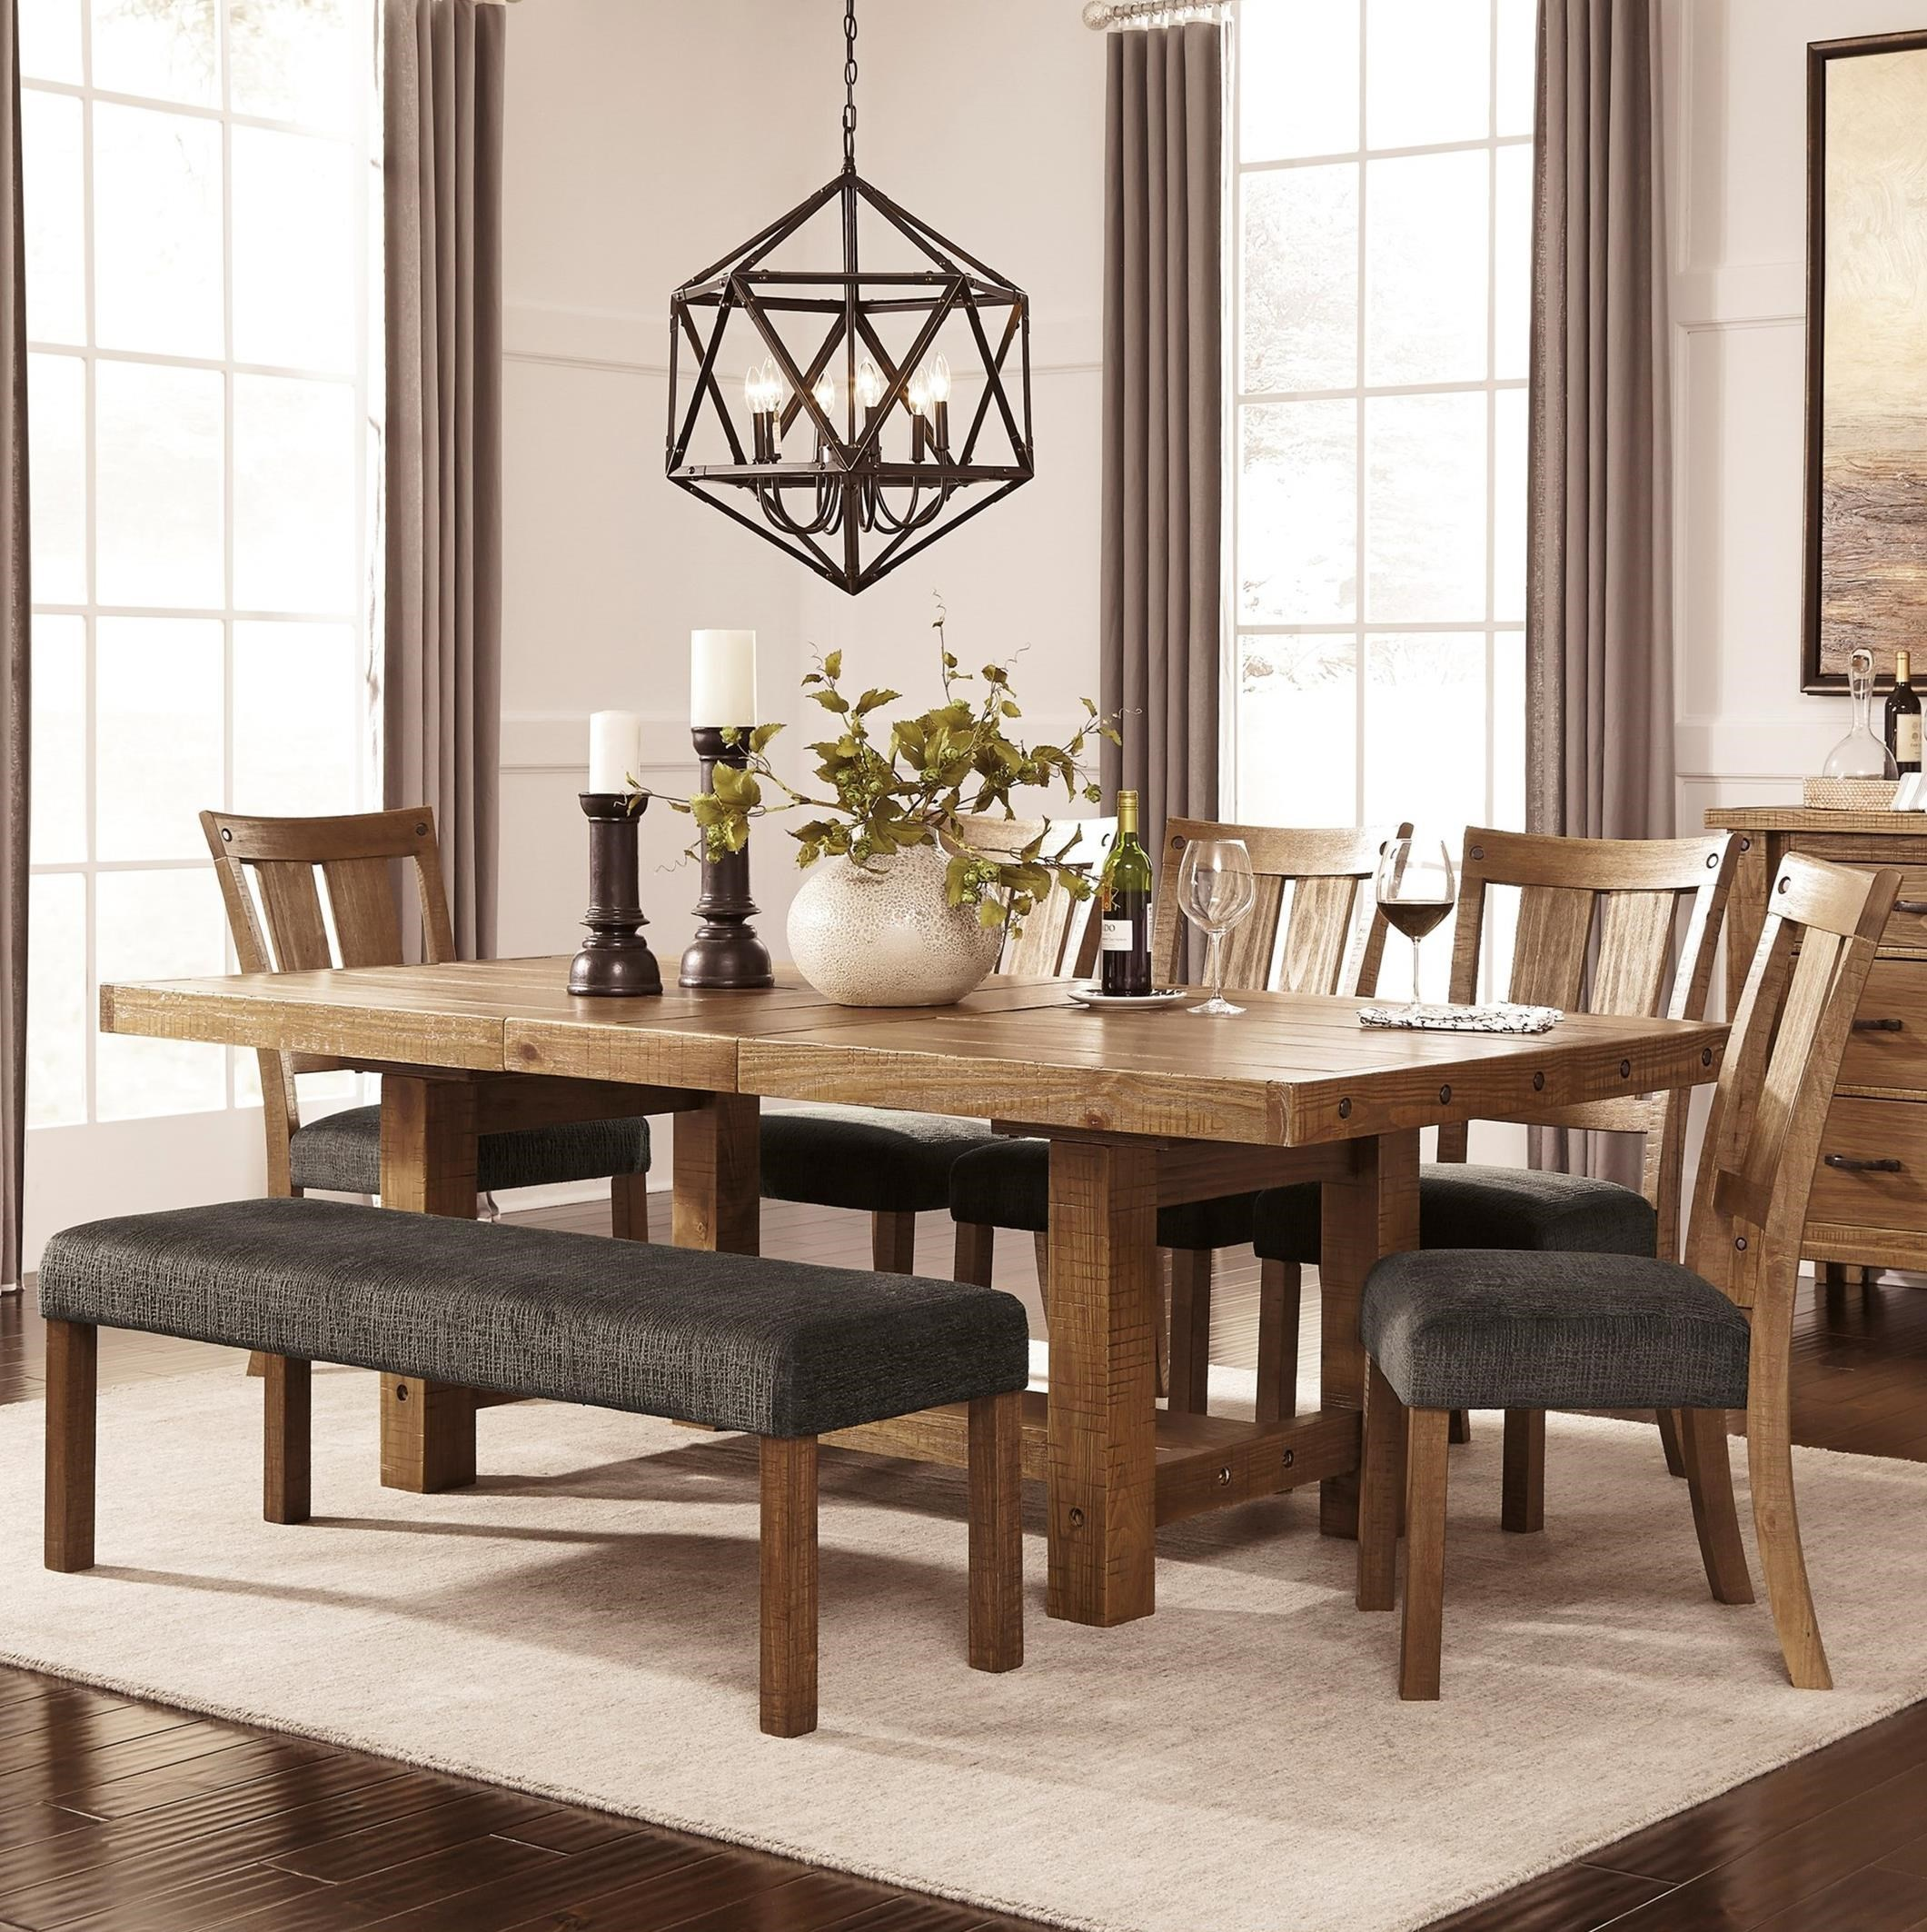 Marvelous Signature Design By Ashley Tamilo 7 Piece Table U0026 Chair Set With Bench